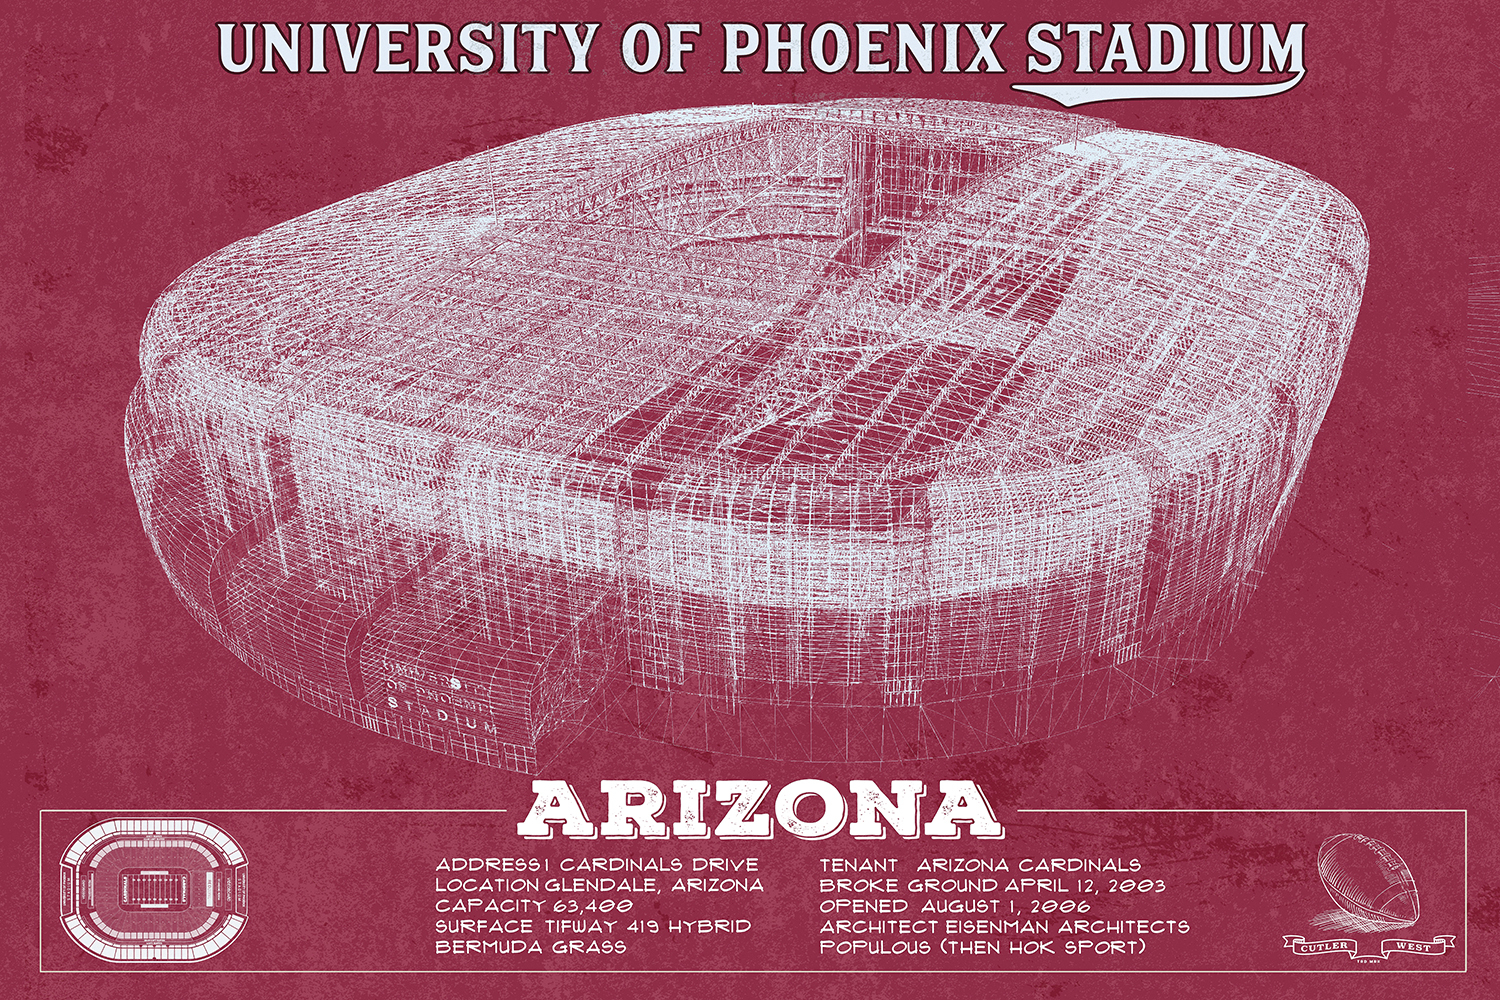 Red blueprint of university of phoenix stadium in Arizona with facts at the bottom